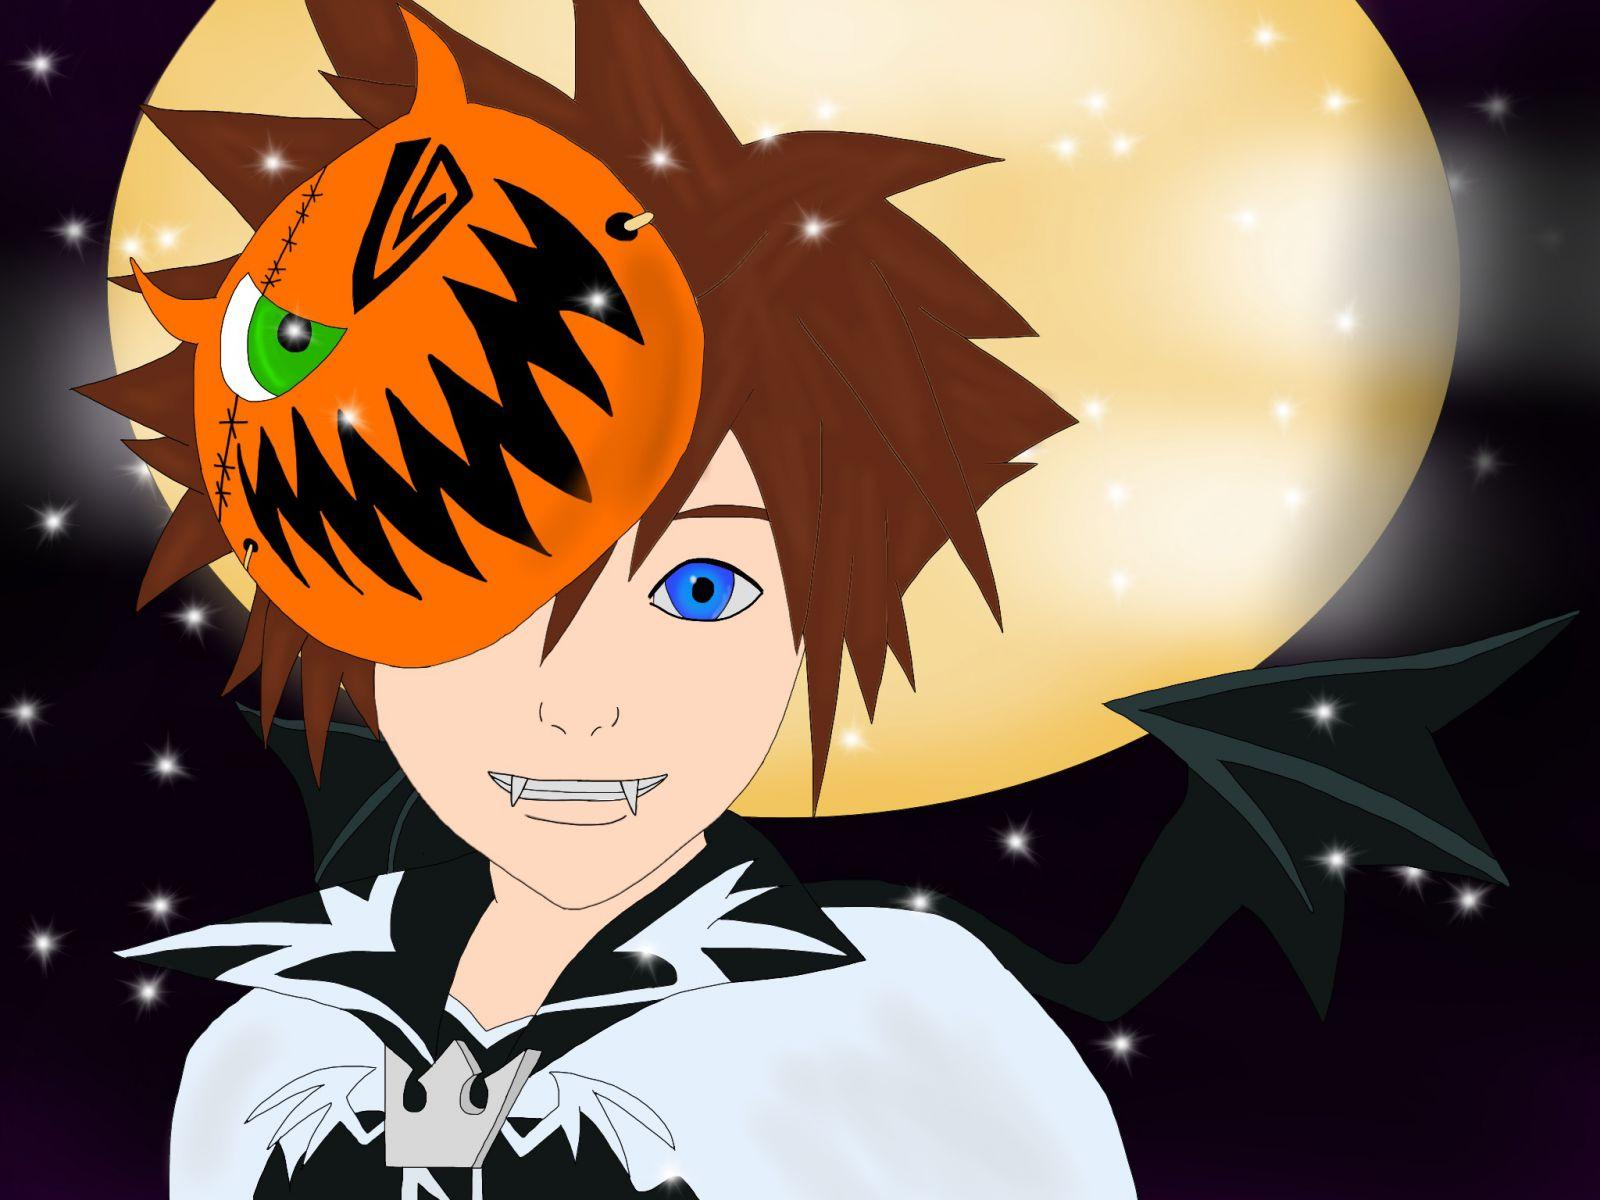 Nightmare Before Christmas Sora.Sora Nightmare Before Christmas Drawings Kh13 For